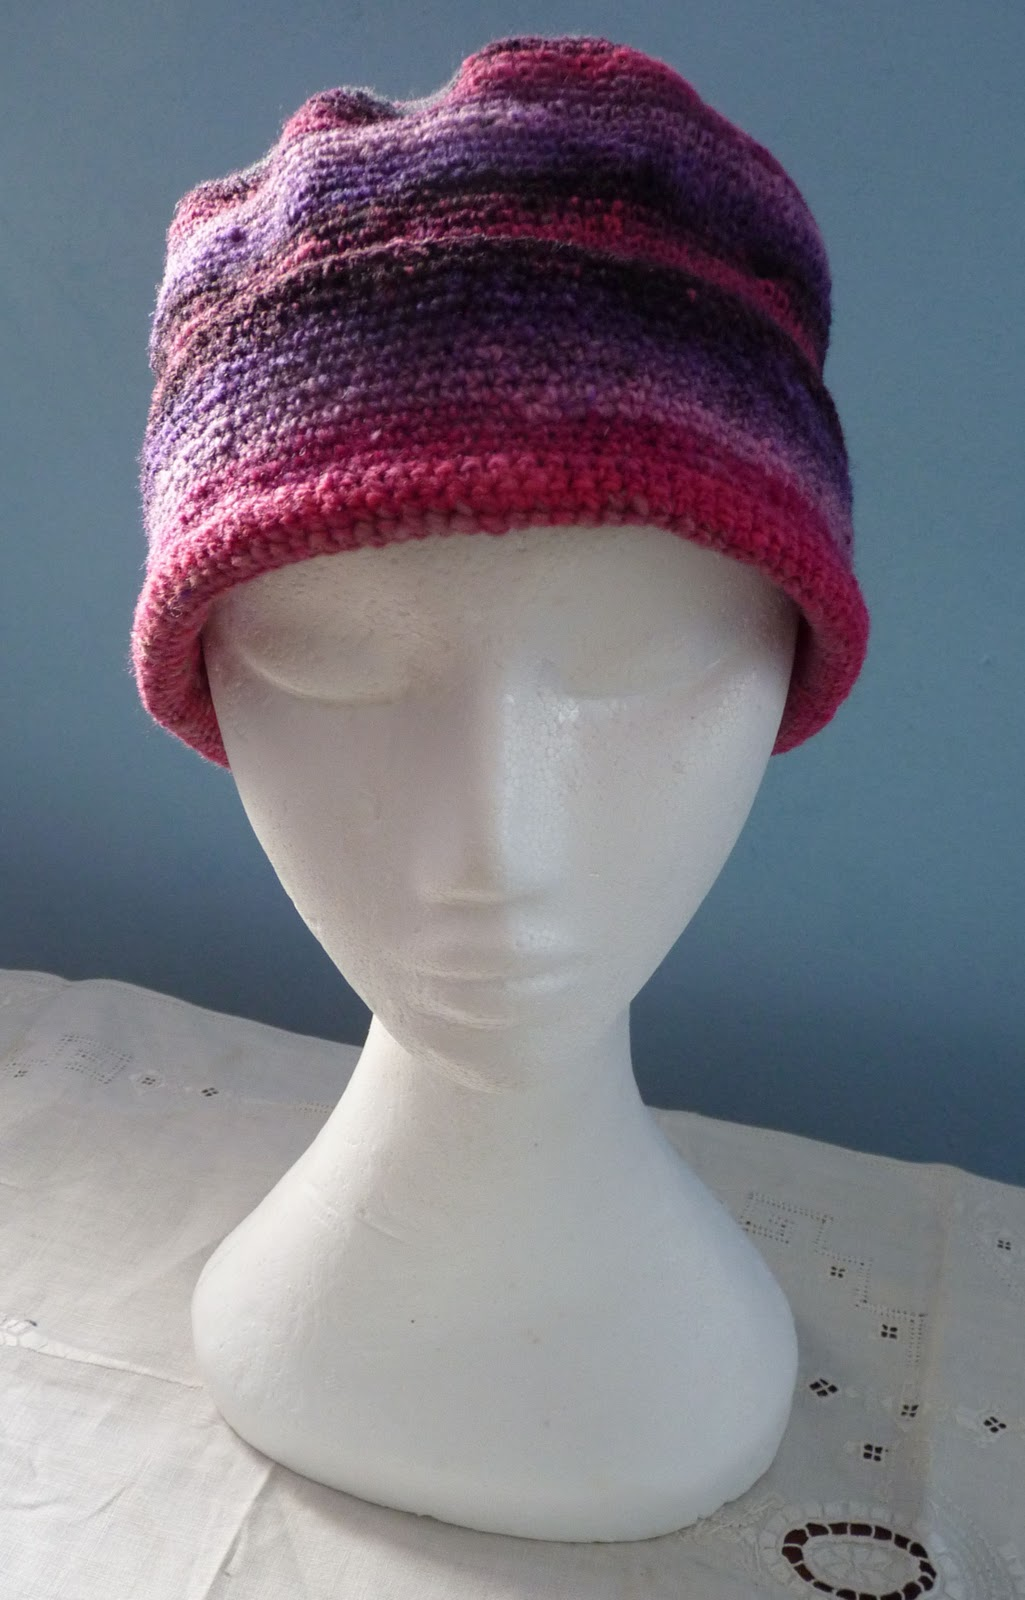 Knitting Patterns For Sock Yarn Hats : The Adventures of the Gingerbread Lady: PATTERN: SiSoYa Hat   Simple Sock Yar...